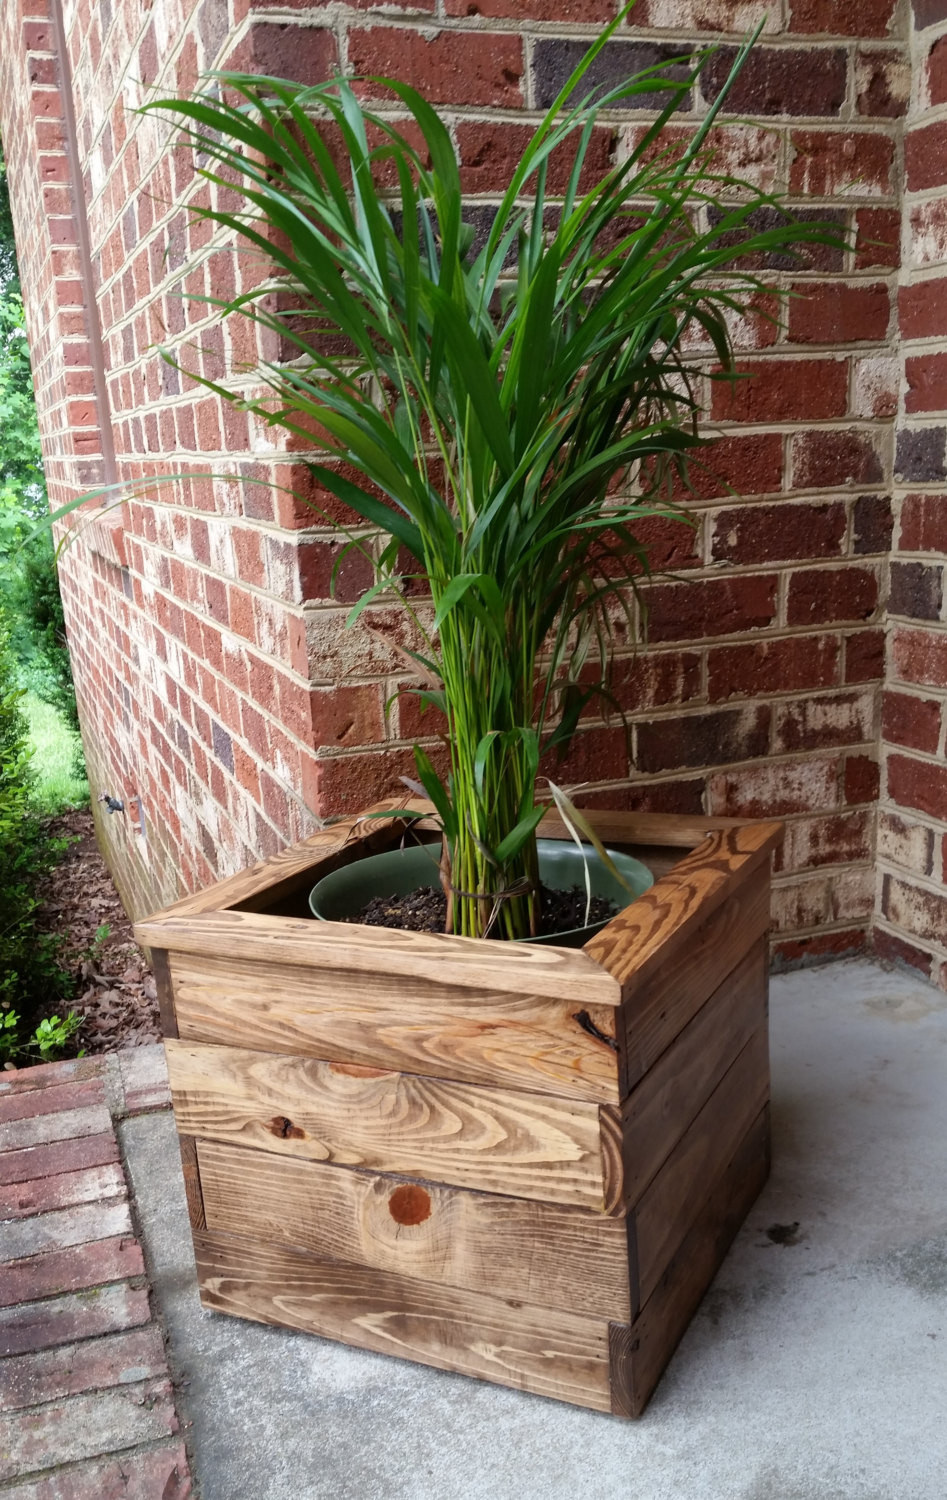 Best ideas about DIY Wood Planter . Save or Pin Reclaimed Pallet Wood Indoor Planter Box by AJSCreationsCo Now.